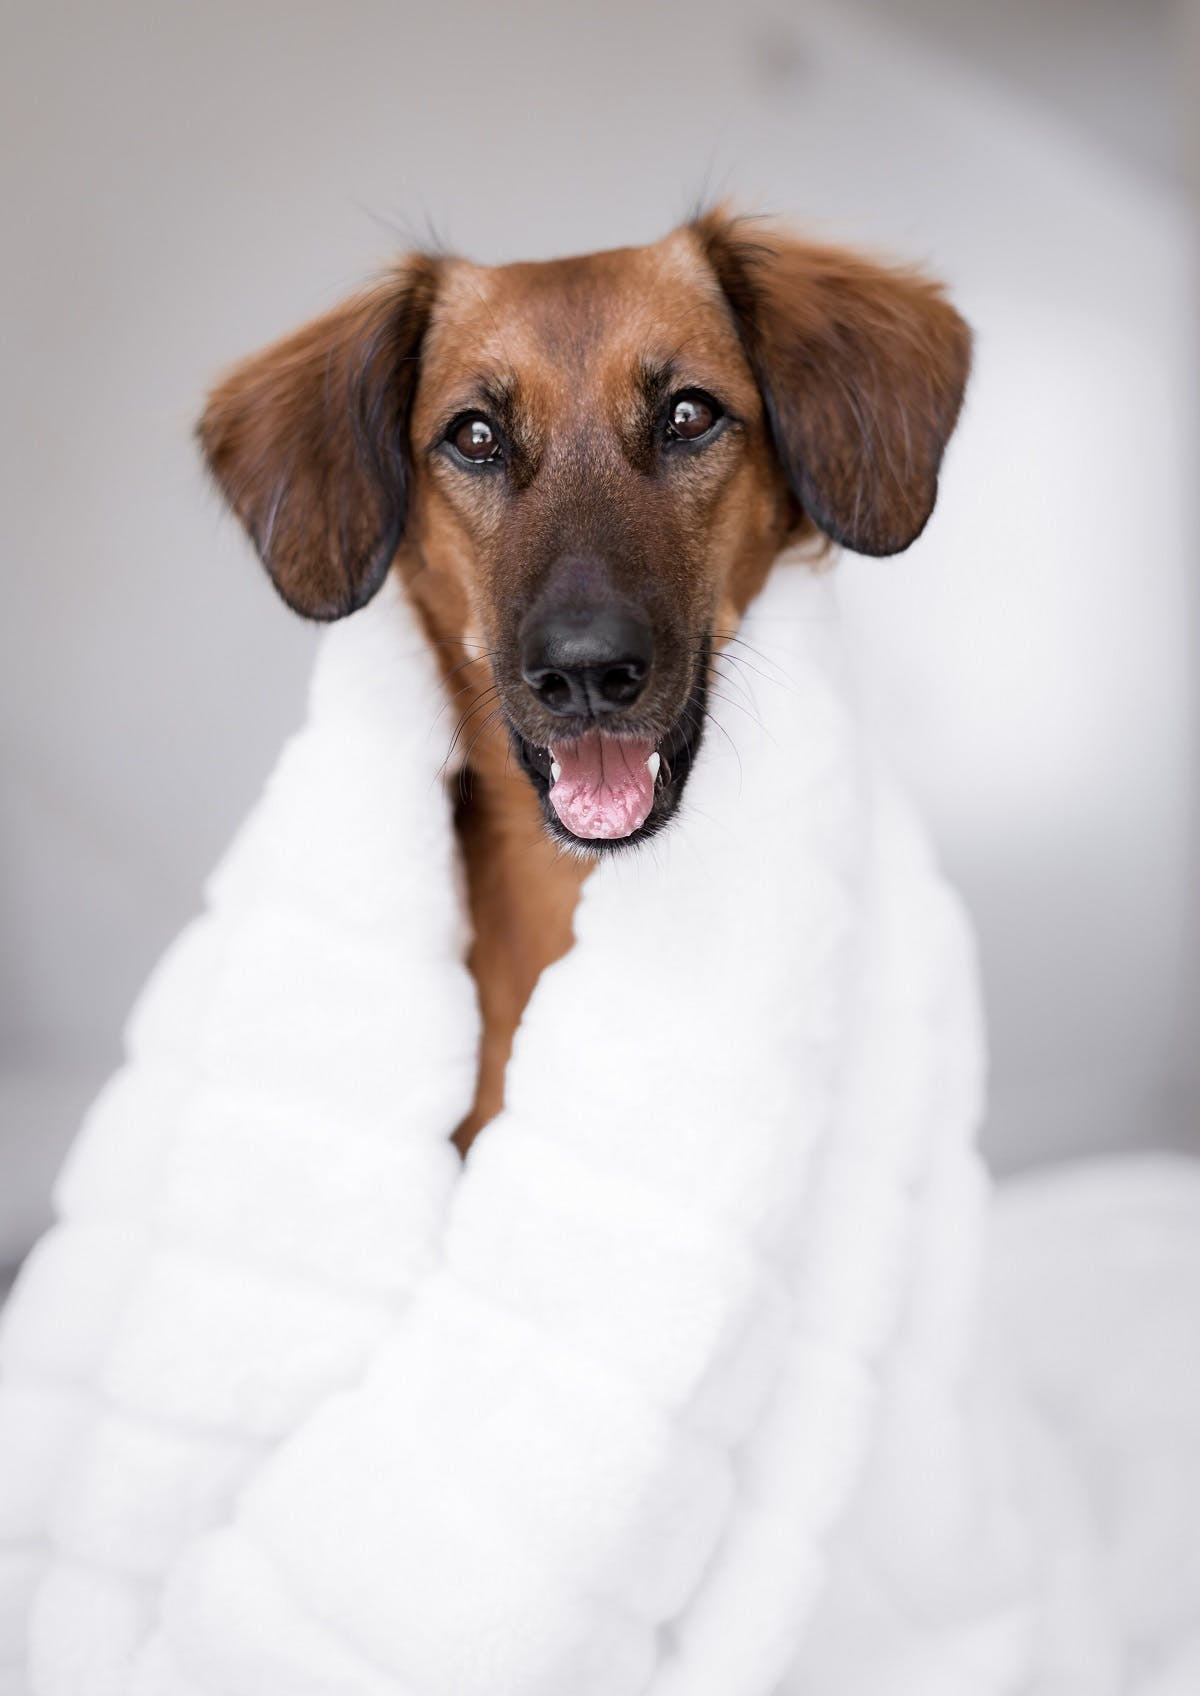 A brown dog wrapped up in a white blanket